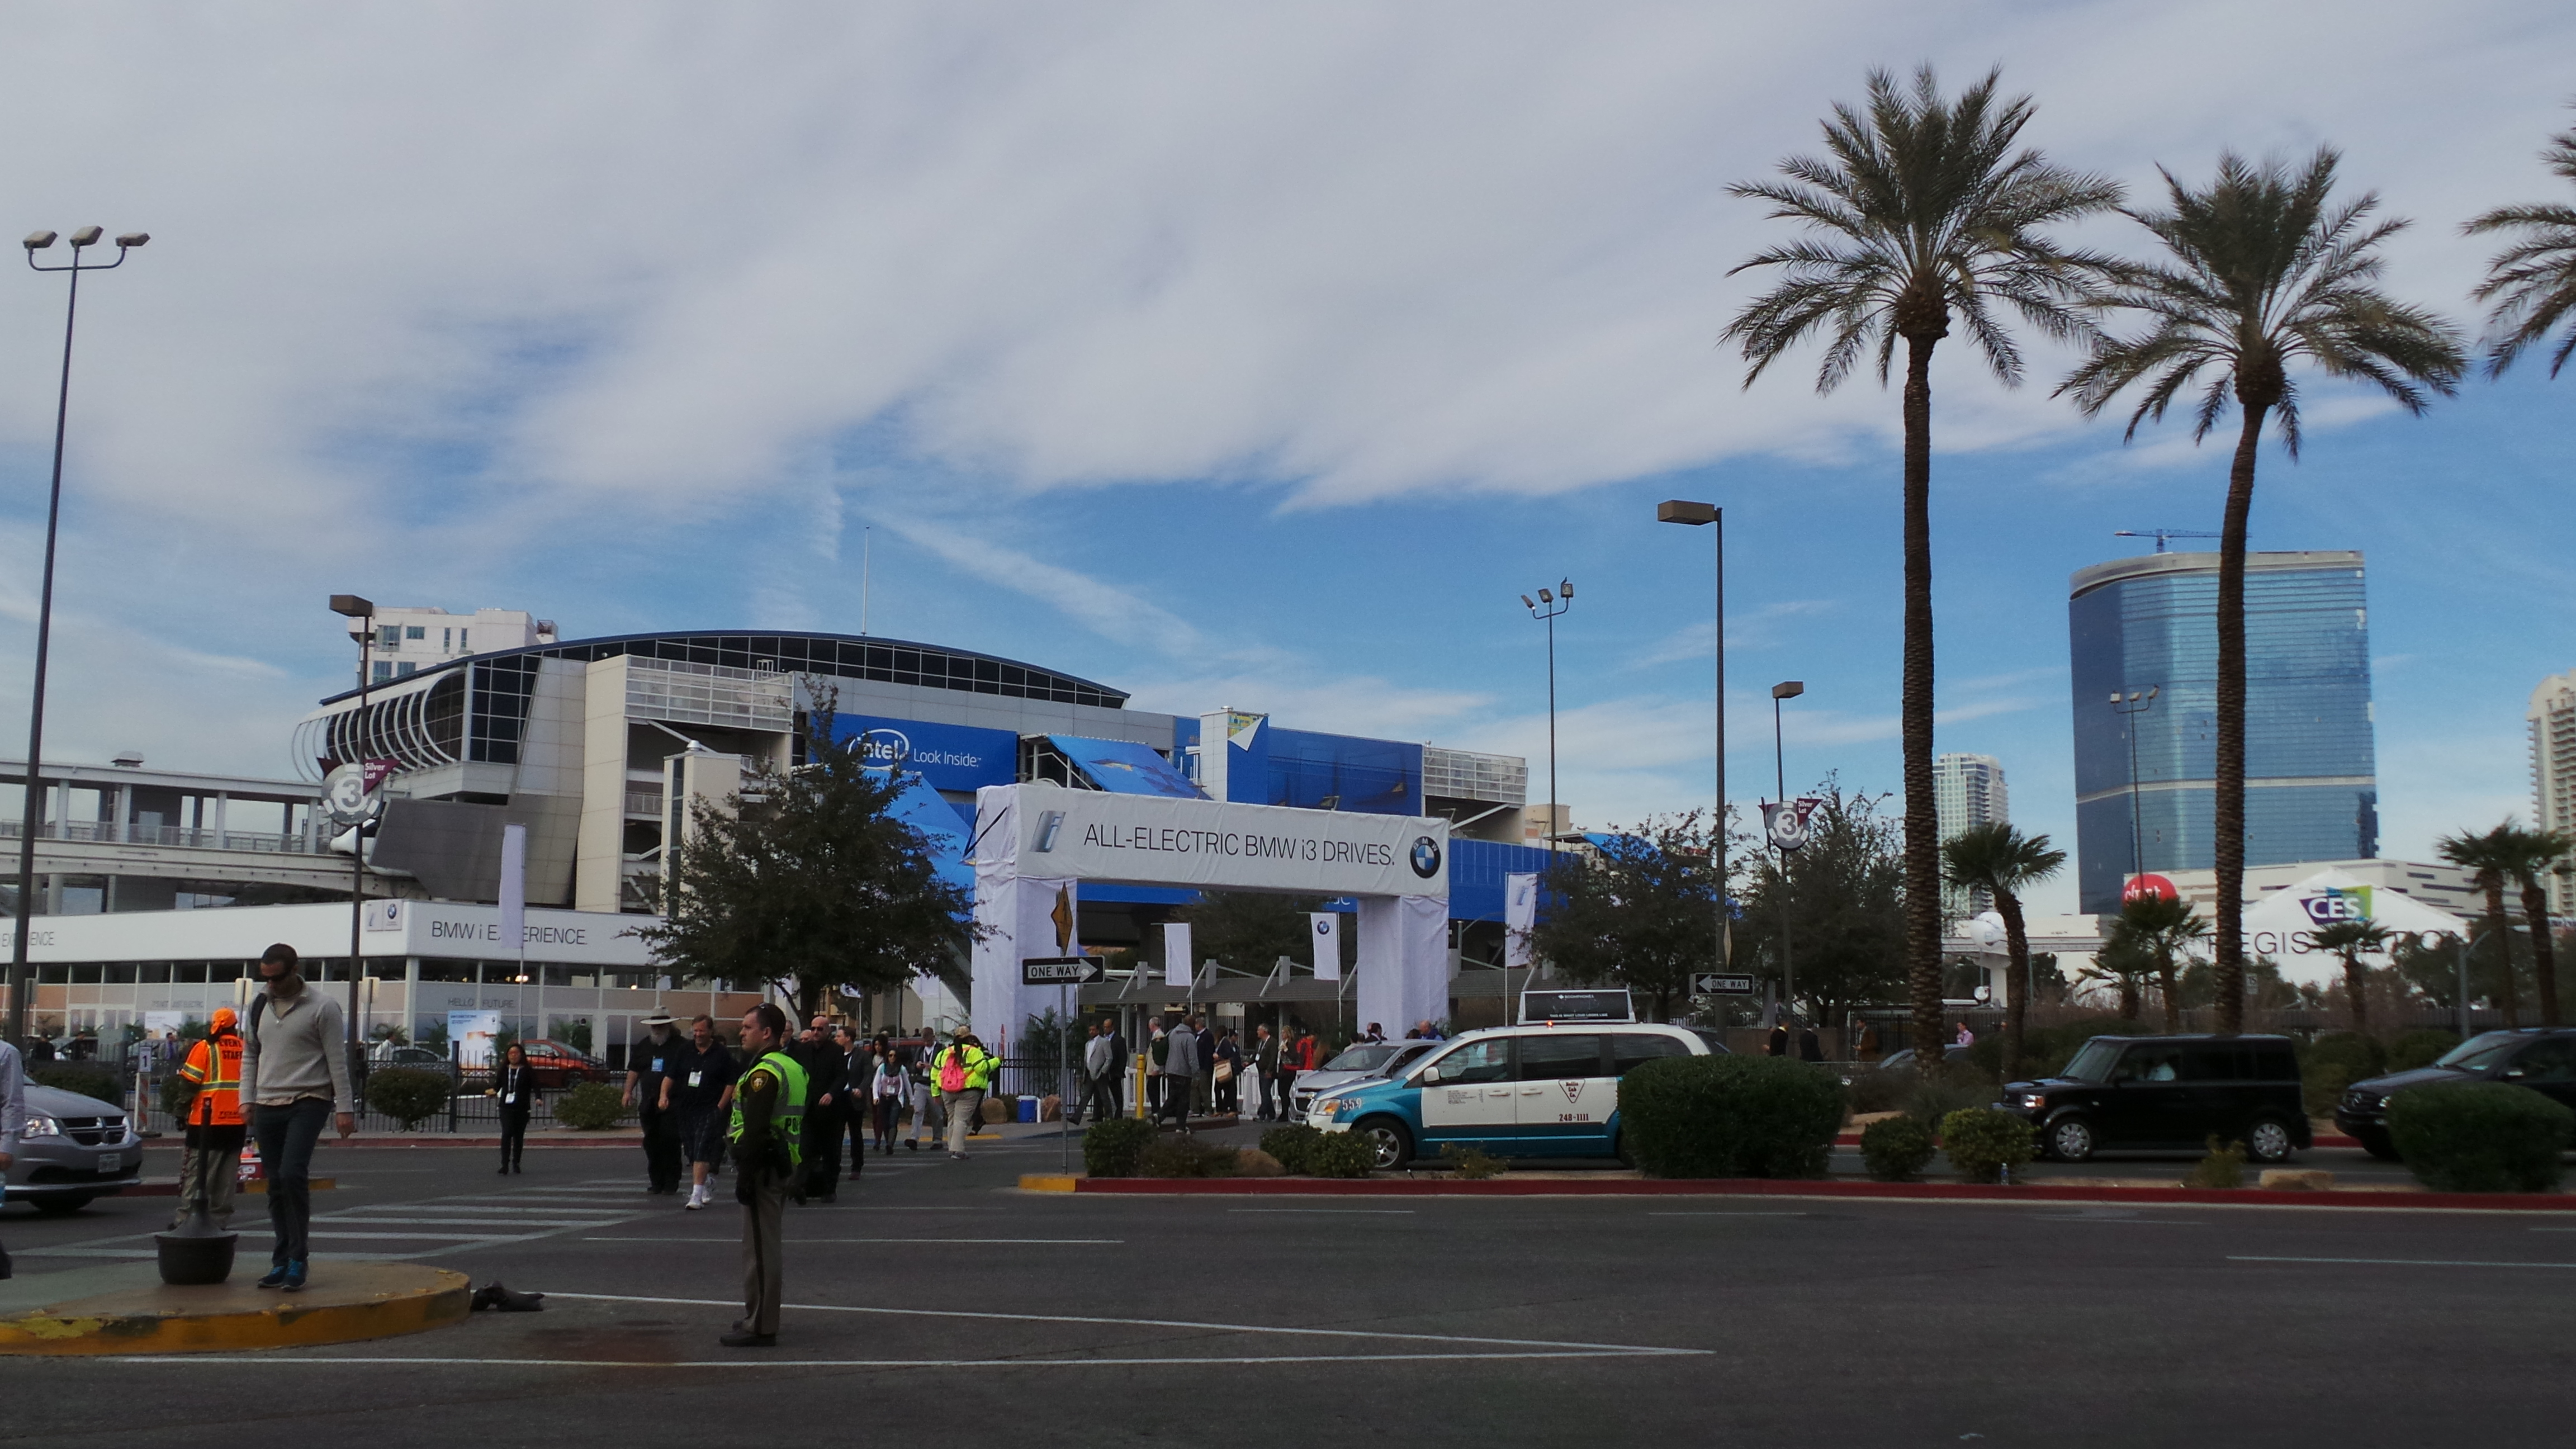 #CES2015 is Almost Here. My Personal Top Five Reasons for Attending Each Year